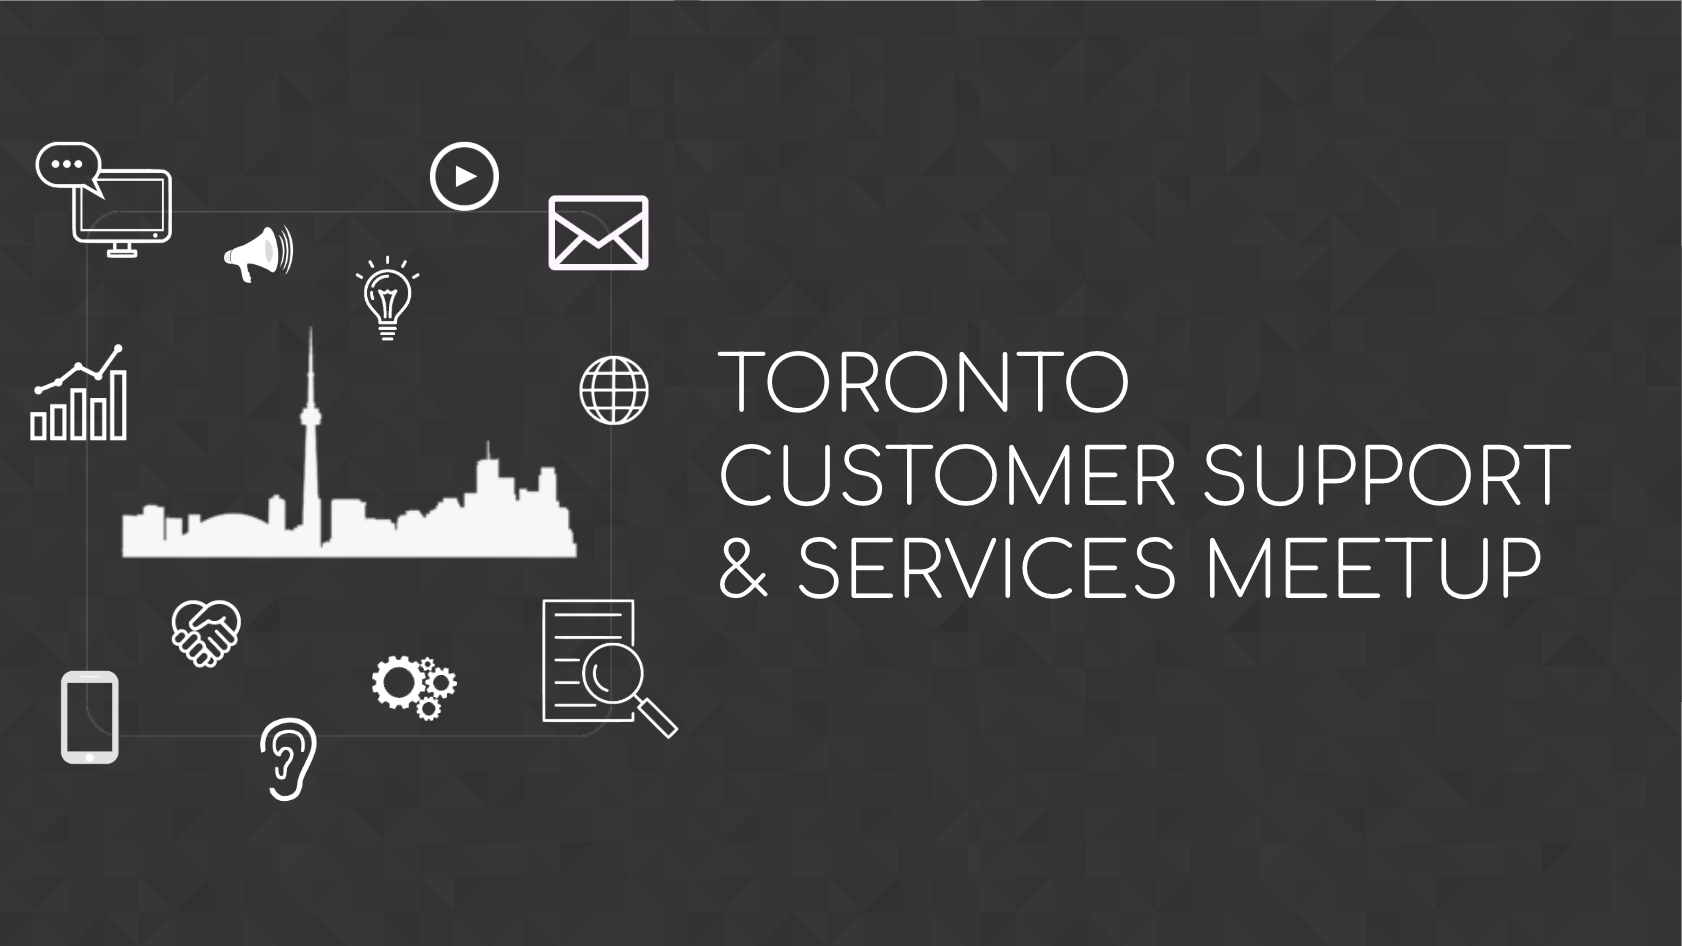 Toronto Customer Support & Services Meetup